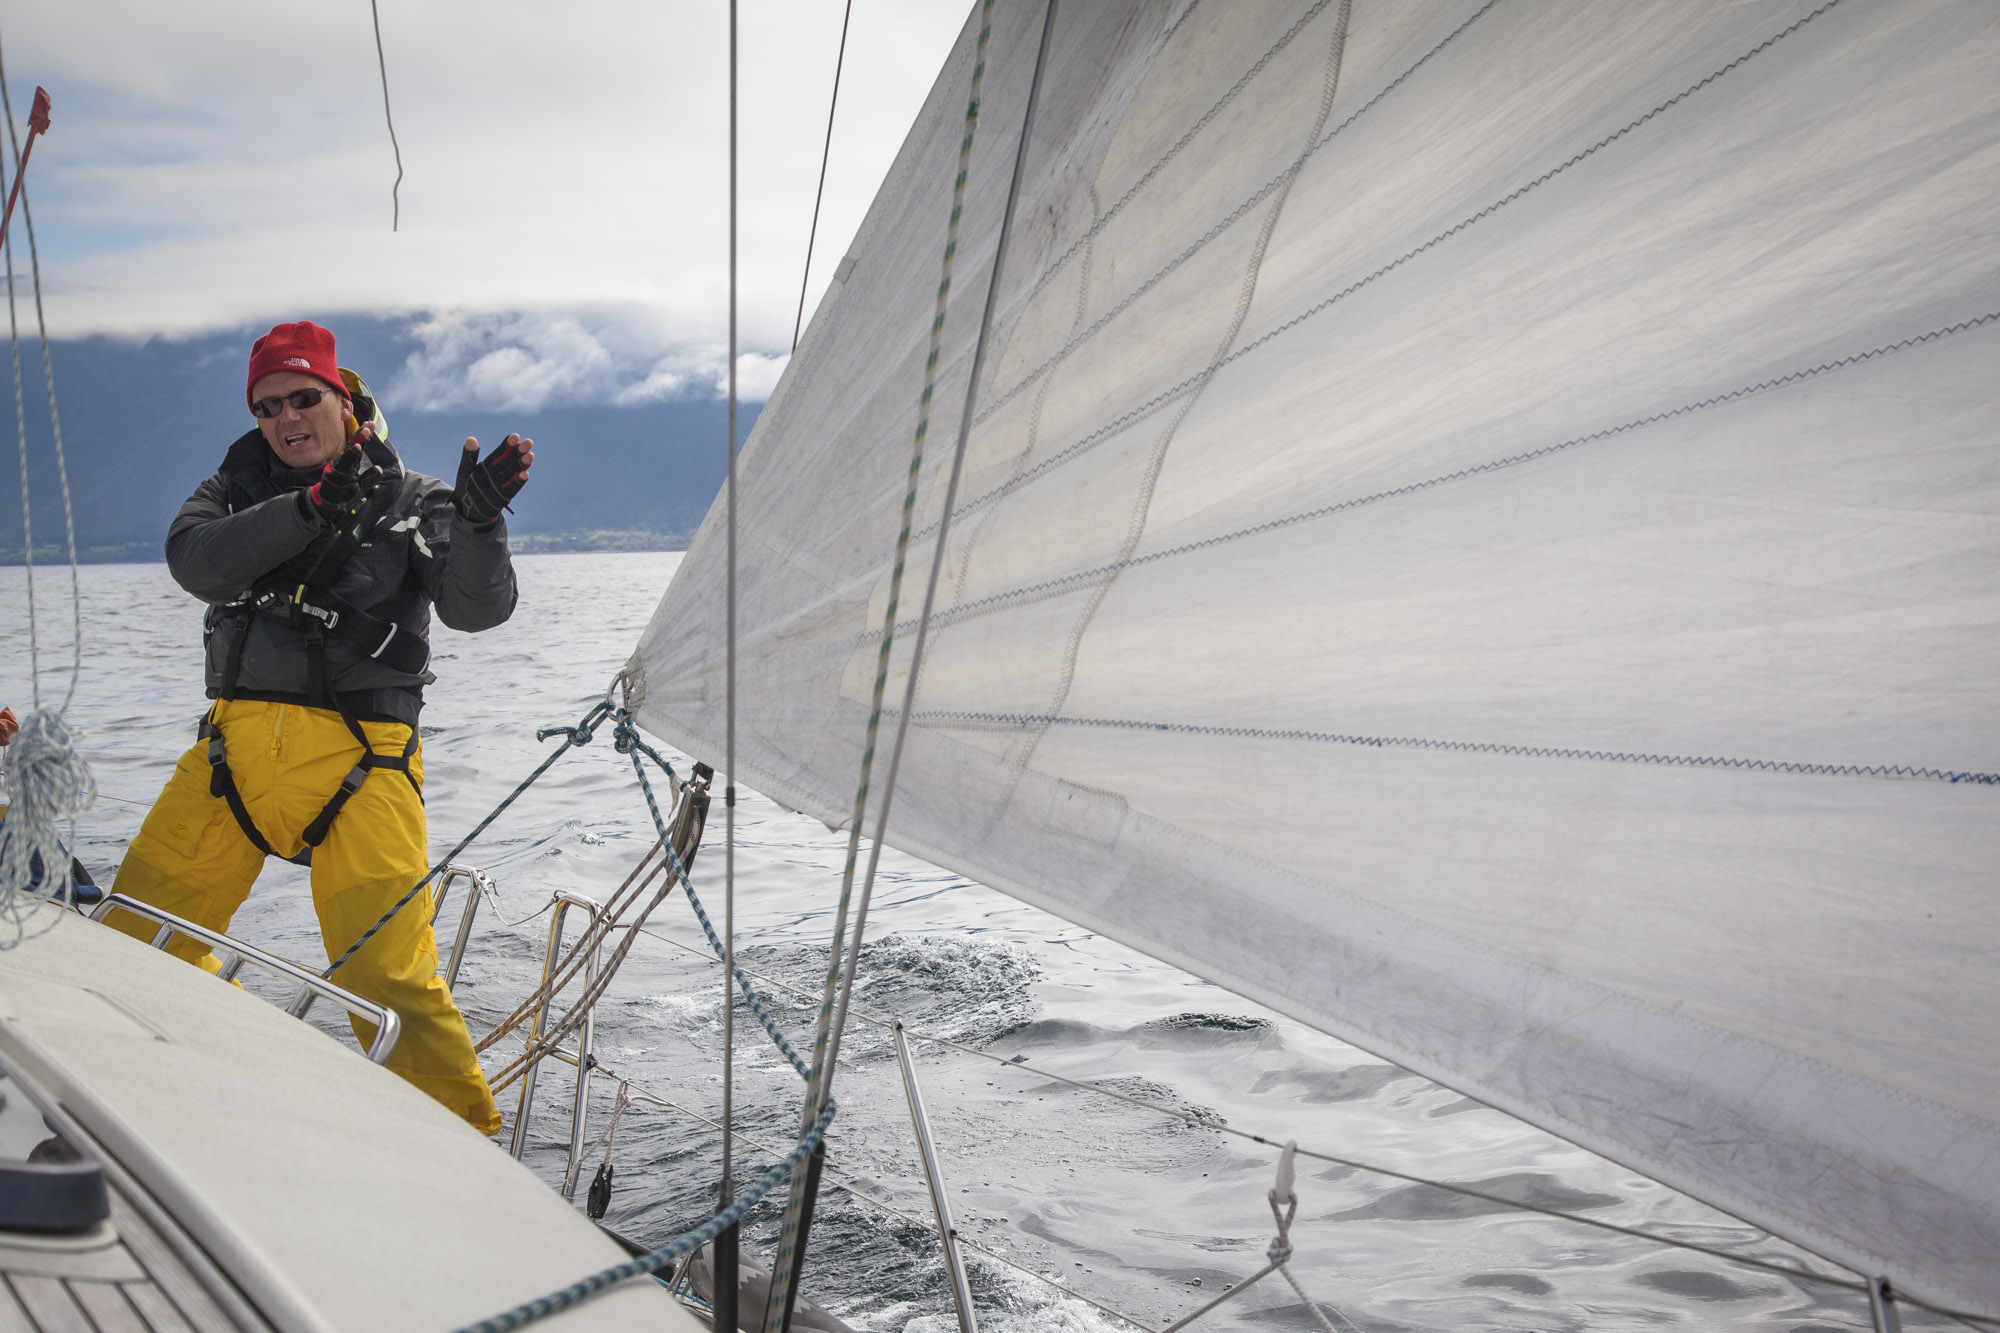 Passion for sailing: CEO Stig A. Waagbø